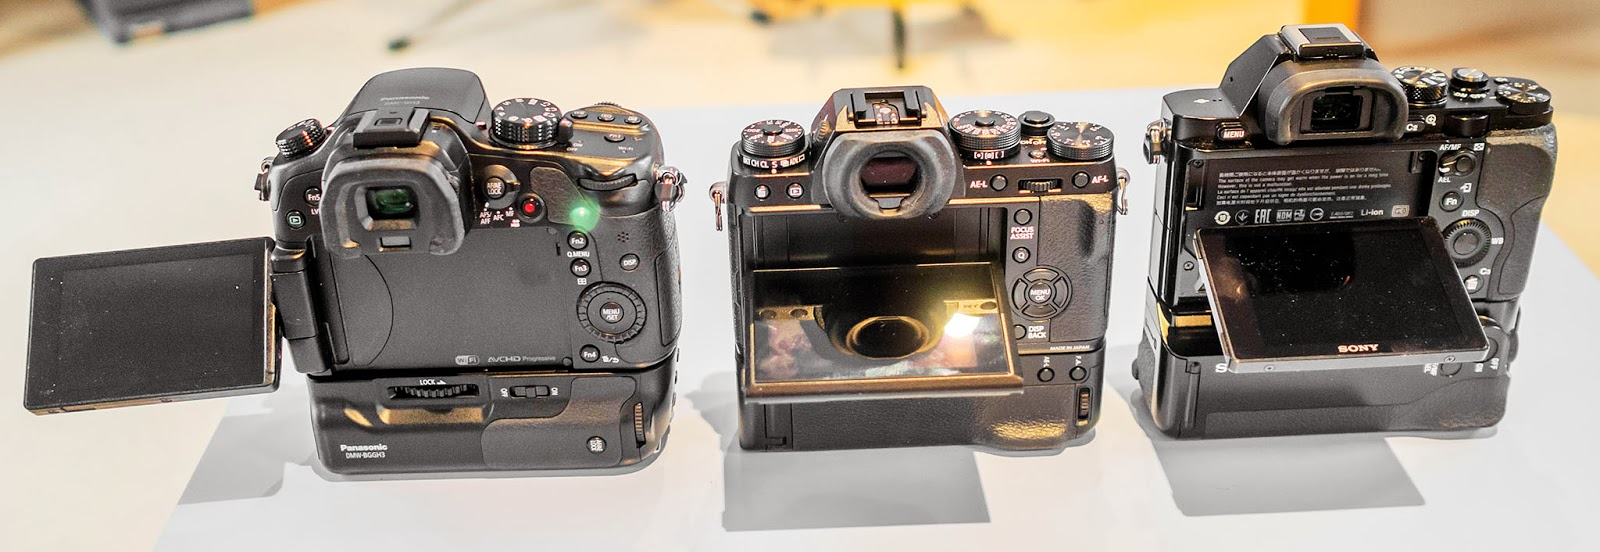 Fuji X-T1, Panasonic GH3, Sony A7r with their different adjustable live view screens.